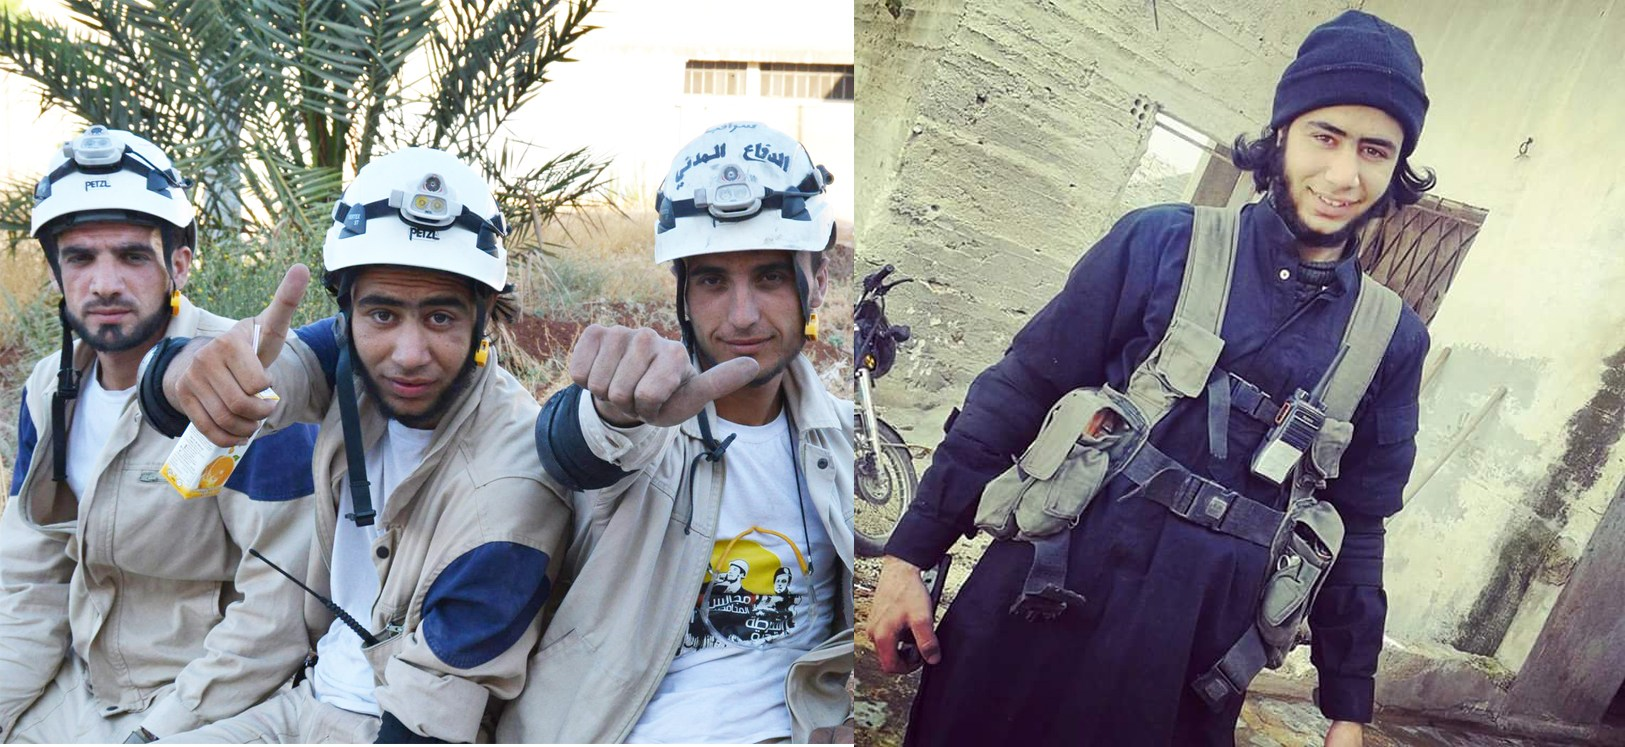 Mo'ad Baresh in his dual role as White Helmets operative and Nusra Front-associated extremist. (Photo: Clarity of Signal/21st Century Wire)